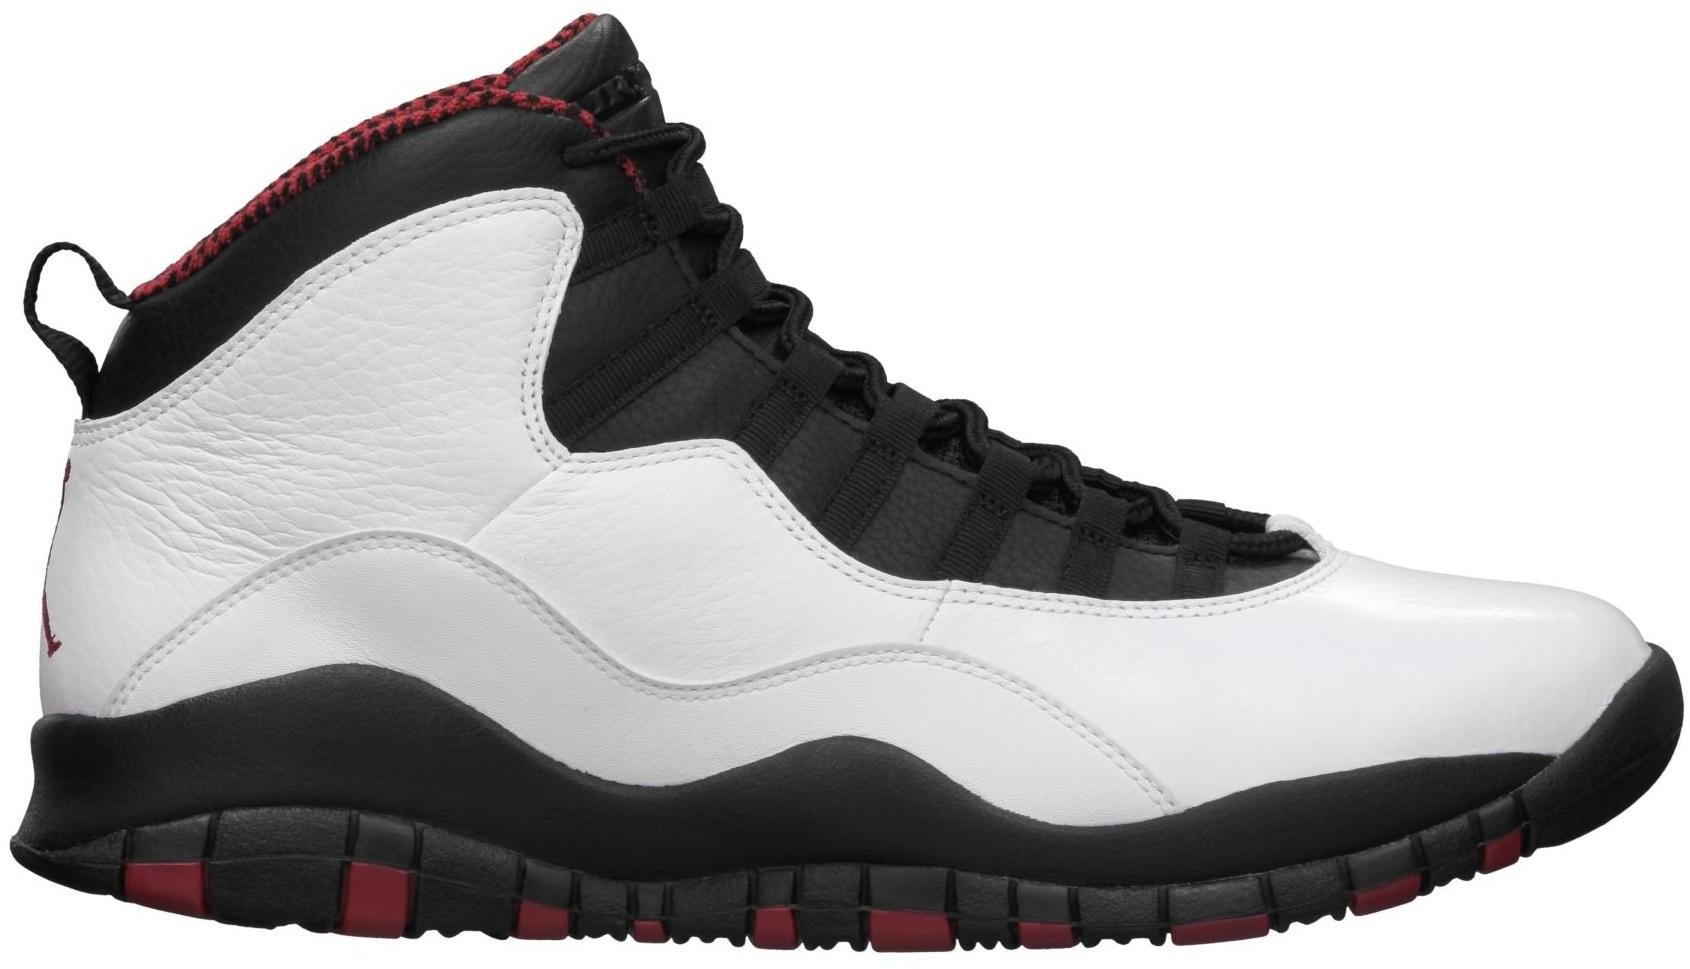 Jordan 10 Retro Chicago Bulls (2012)